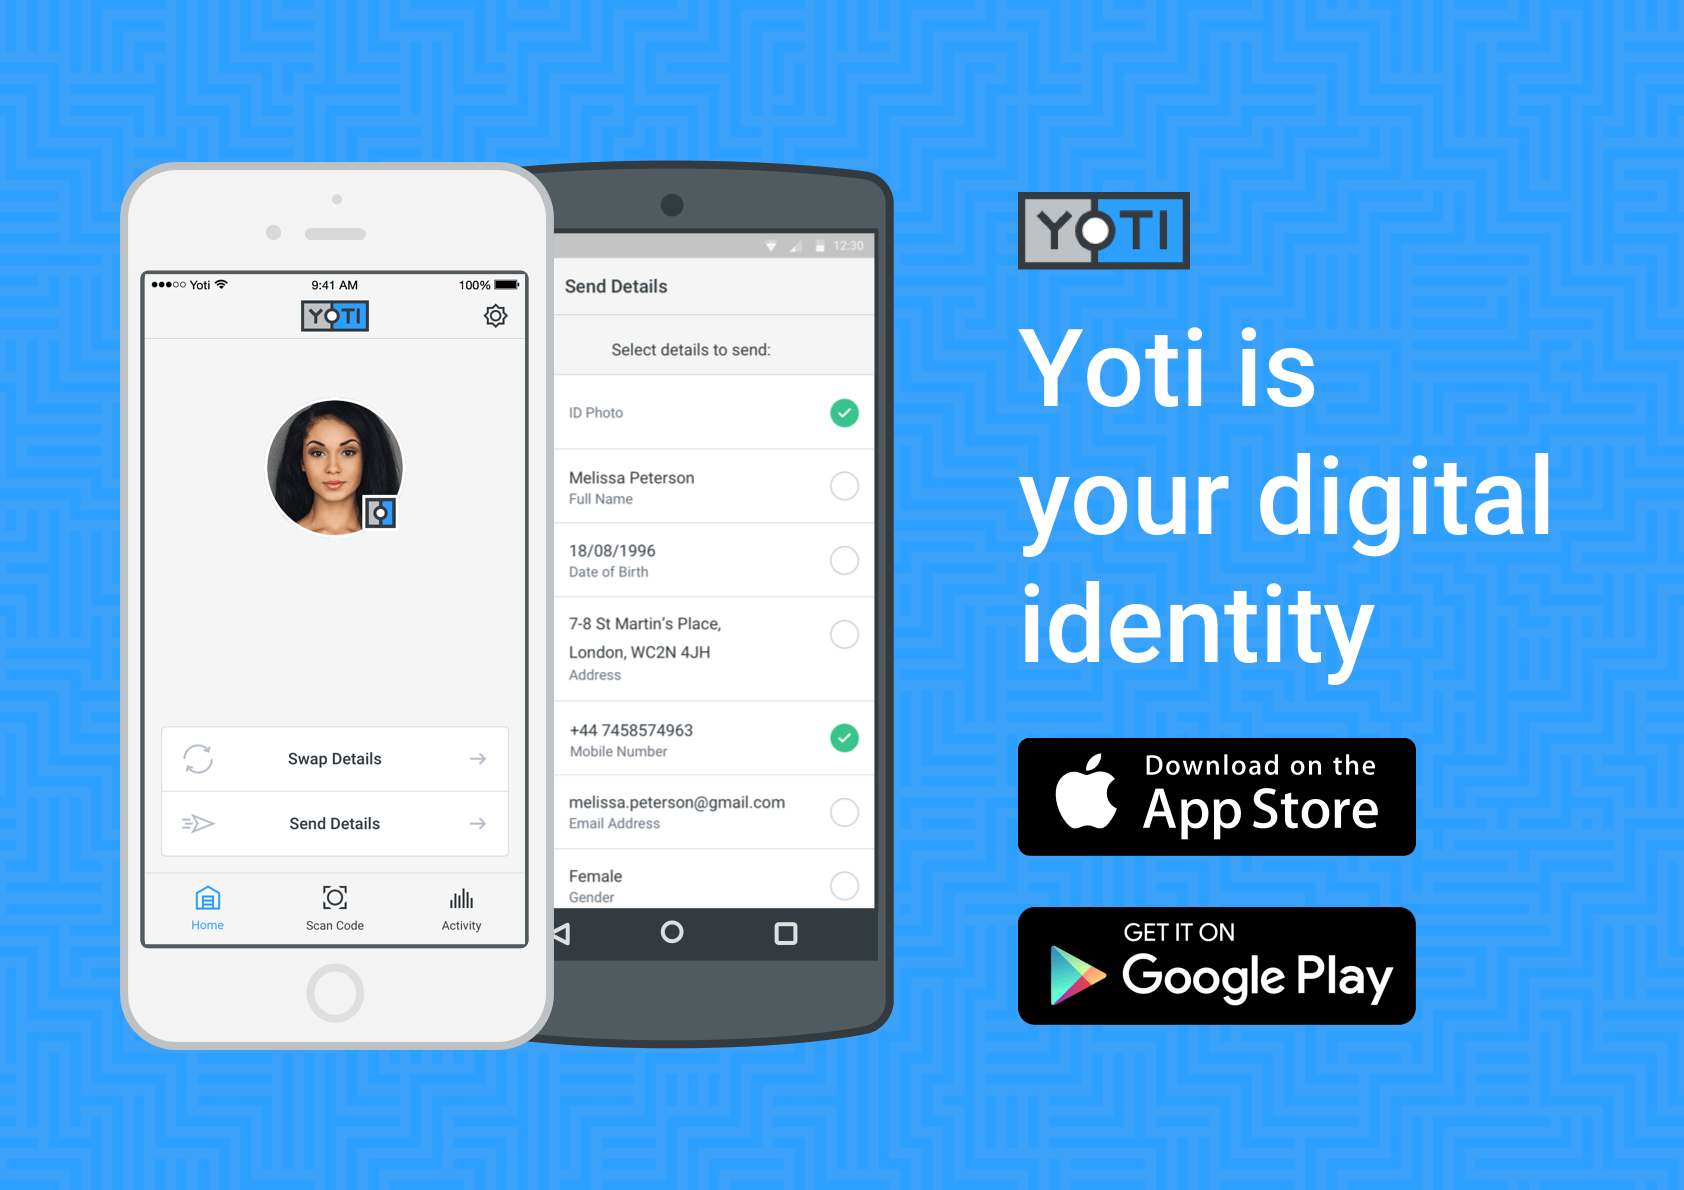 Yoti your digital identity